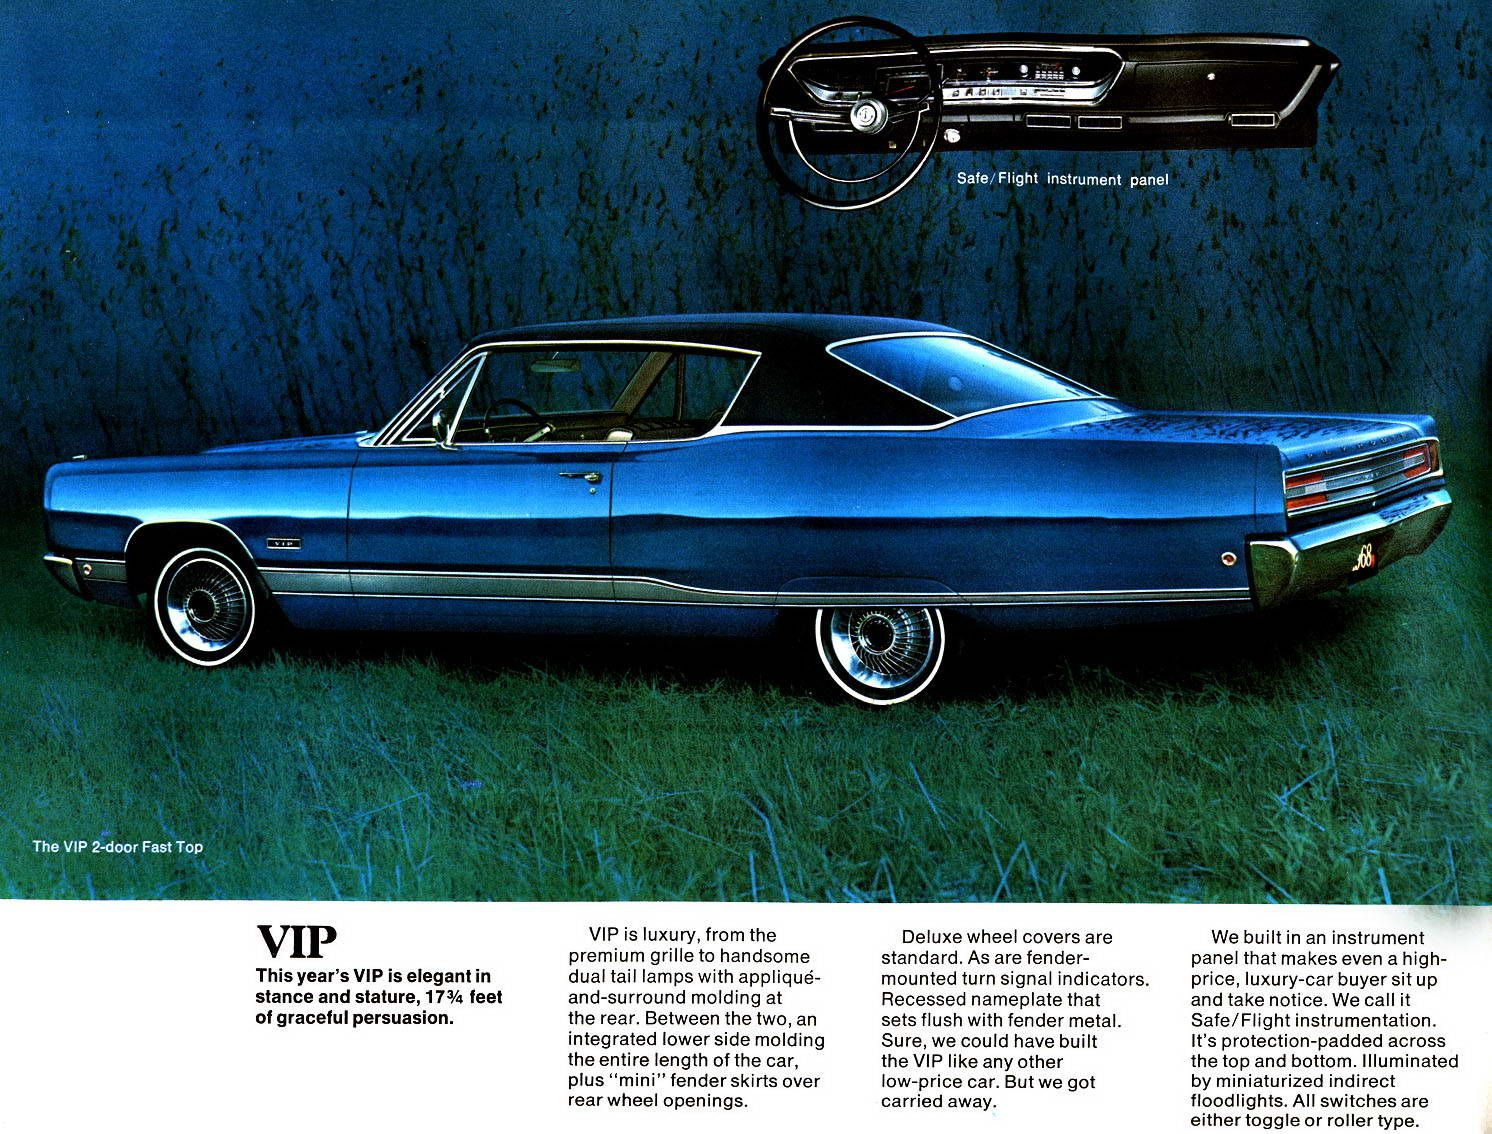 1968 Plymouth Fury VIP Two Door Hardtop | Plymouth: 1967 & 1968 ...